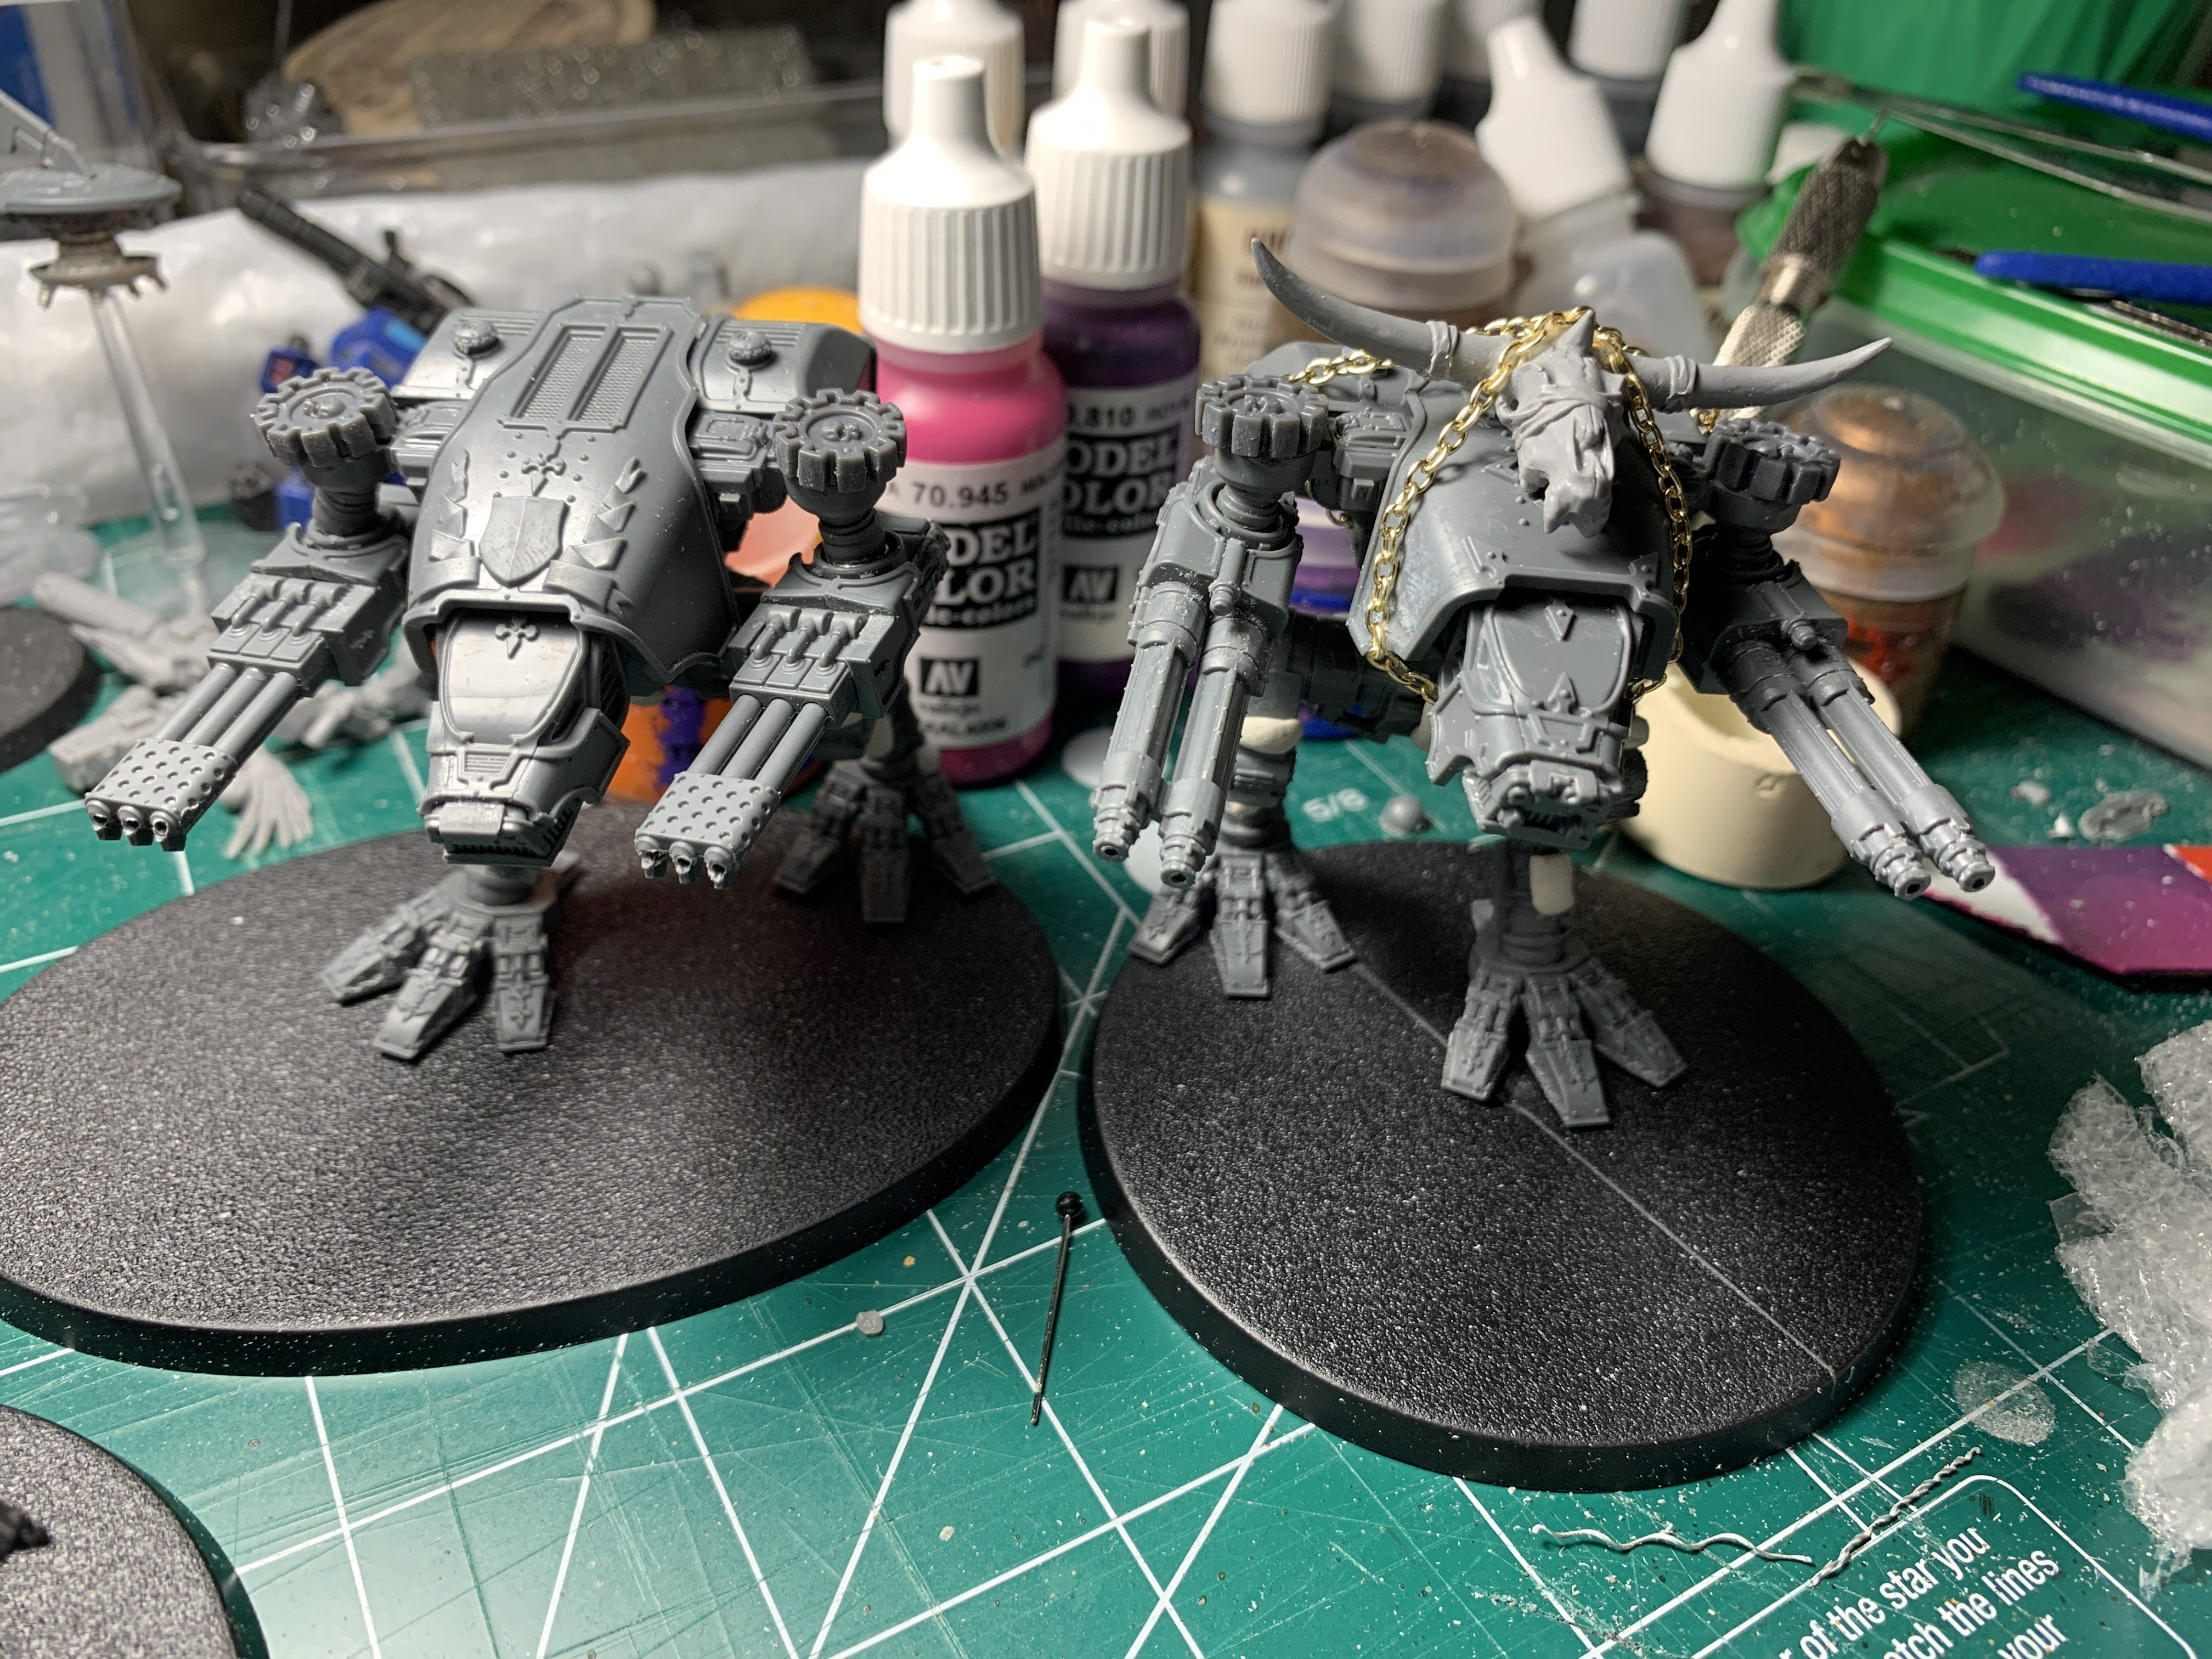 Two unpainted Titan models, large bipedal vehicles. One has a huge ram's skull chained to its upper carapace.